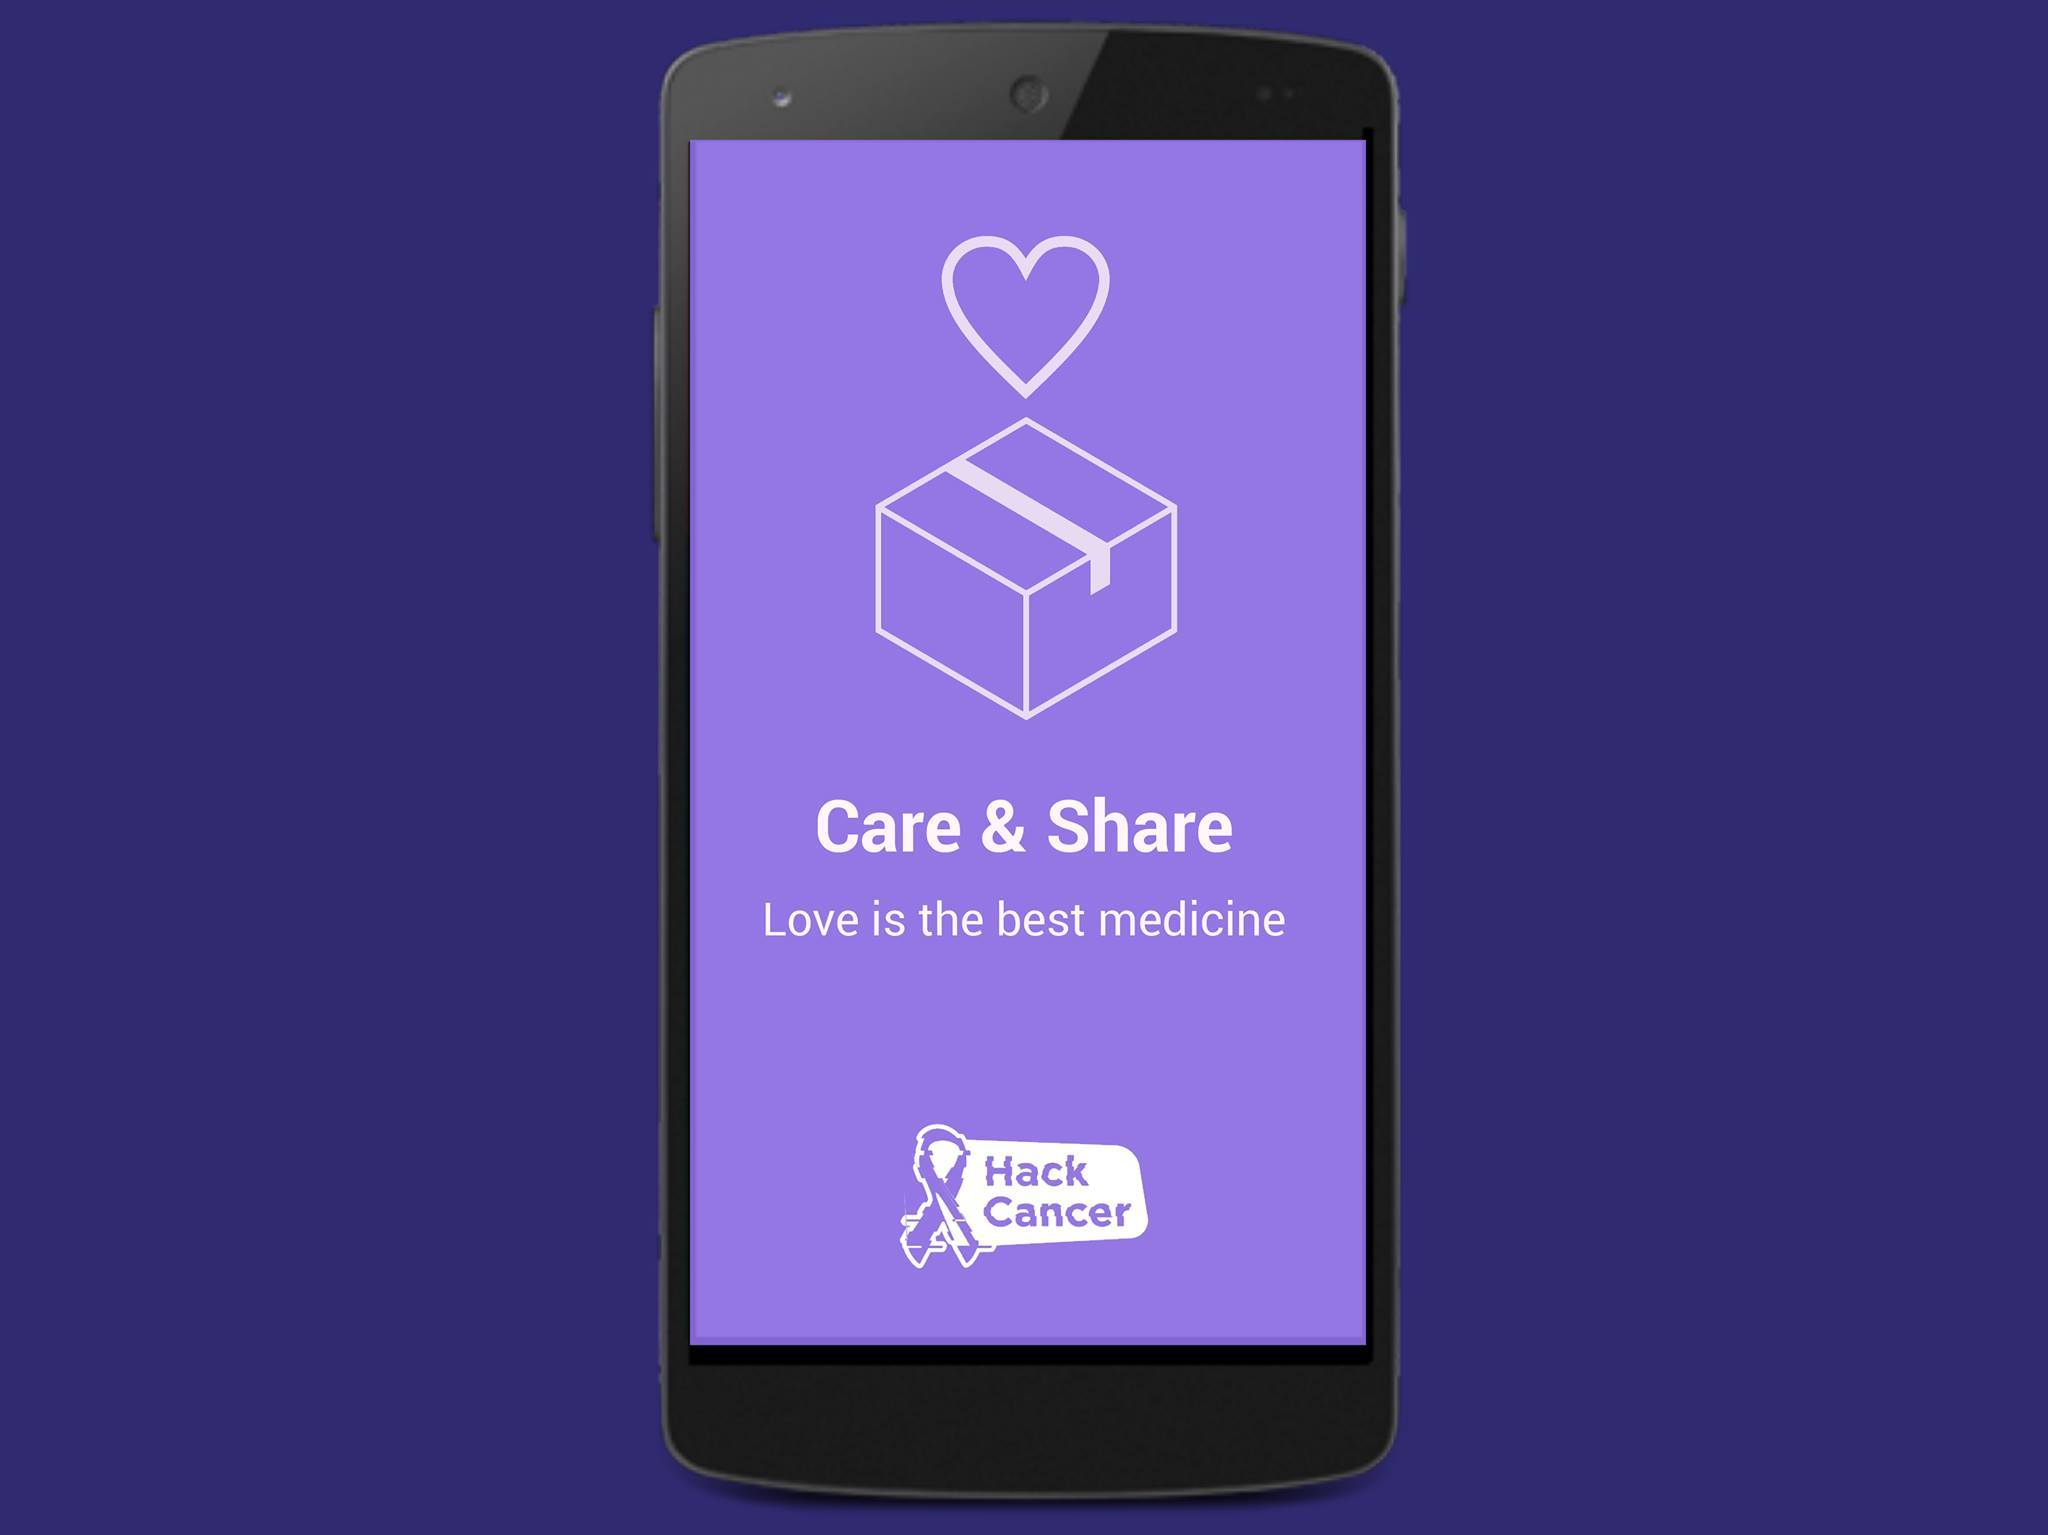 Hack Cancer Care & Share